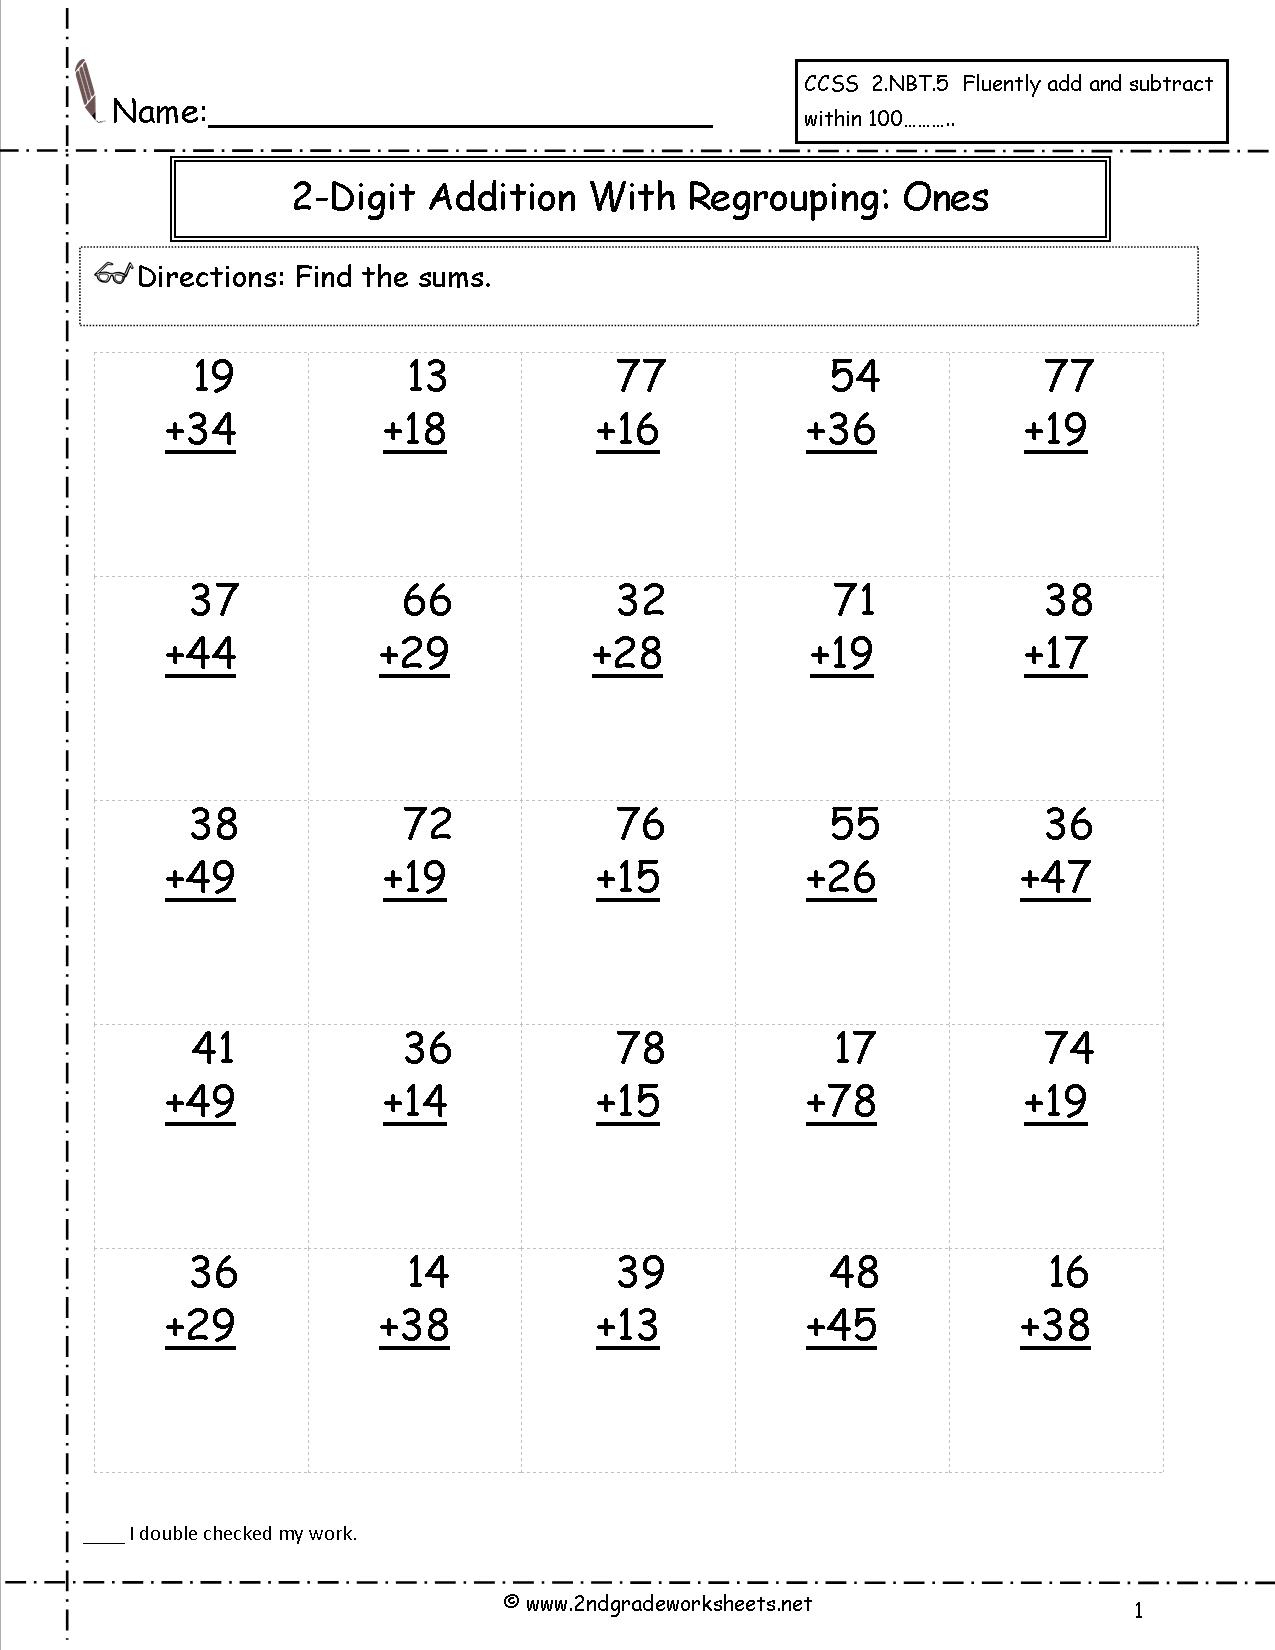 Free Math Worksheets And Printouts | Free Printable Subtraction Worksheets